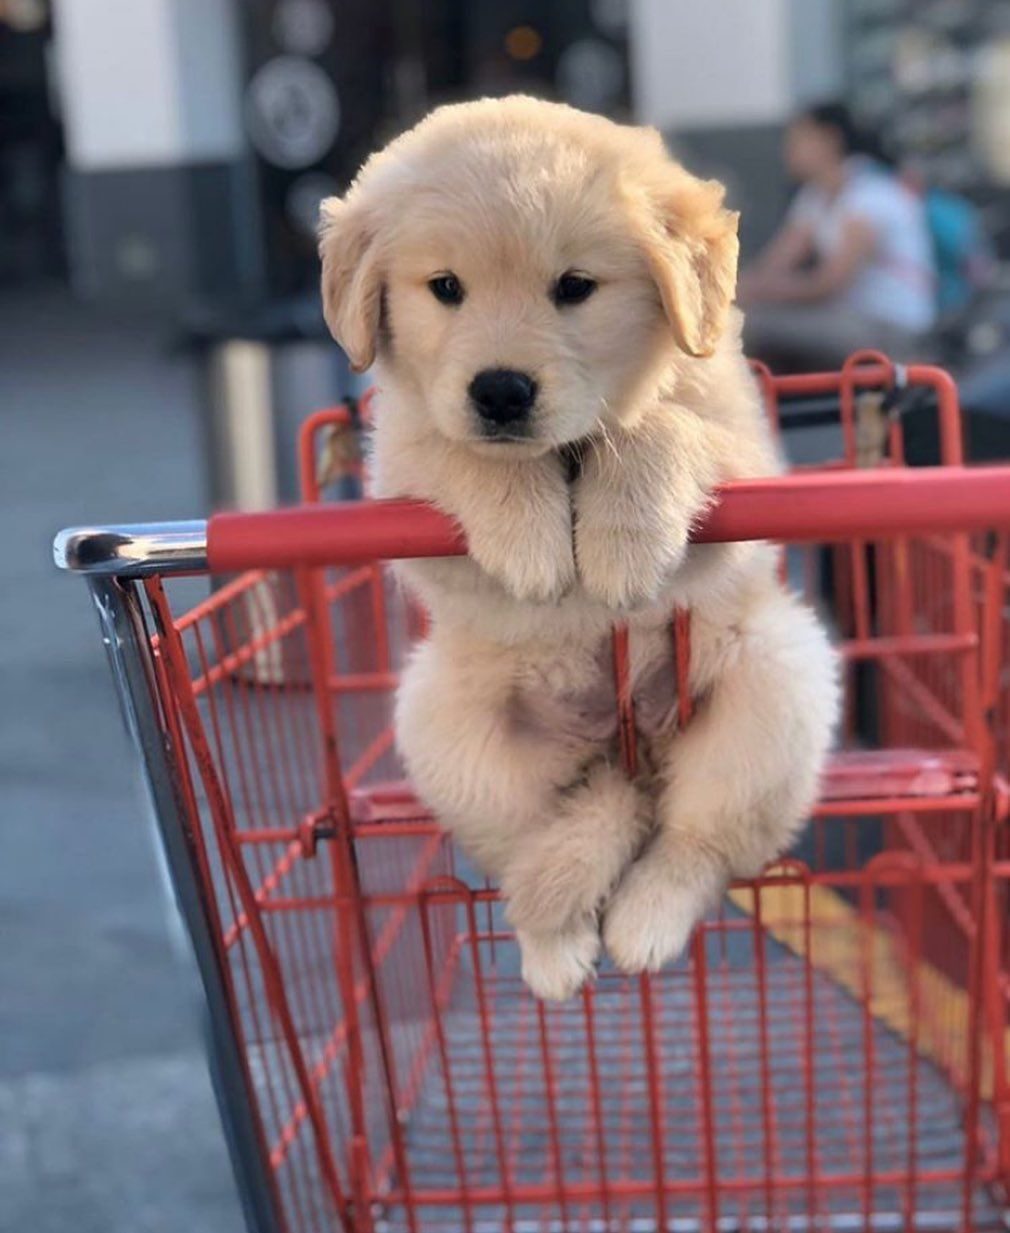 Dog Idea Dog Homes Dog And Baby Dog Projects Dog Cat Dog Ate Dog Home Ideas Home Dog Dog An In 2020 Cute Dogs And Puppies Cute Dog Photos Baby Animals Pictures